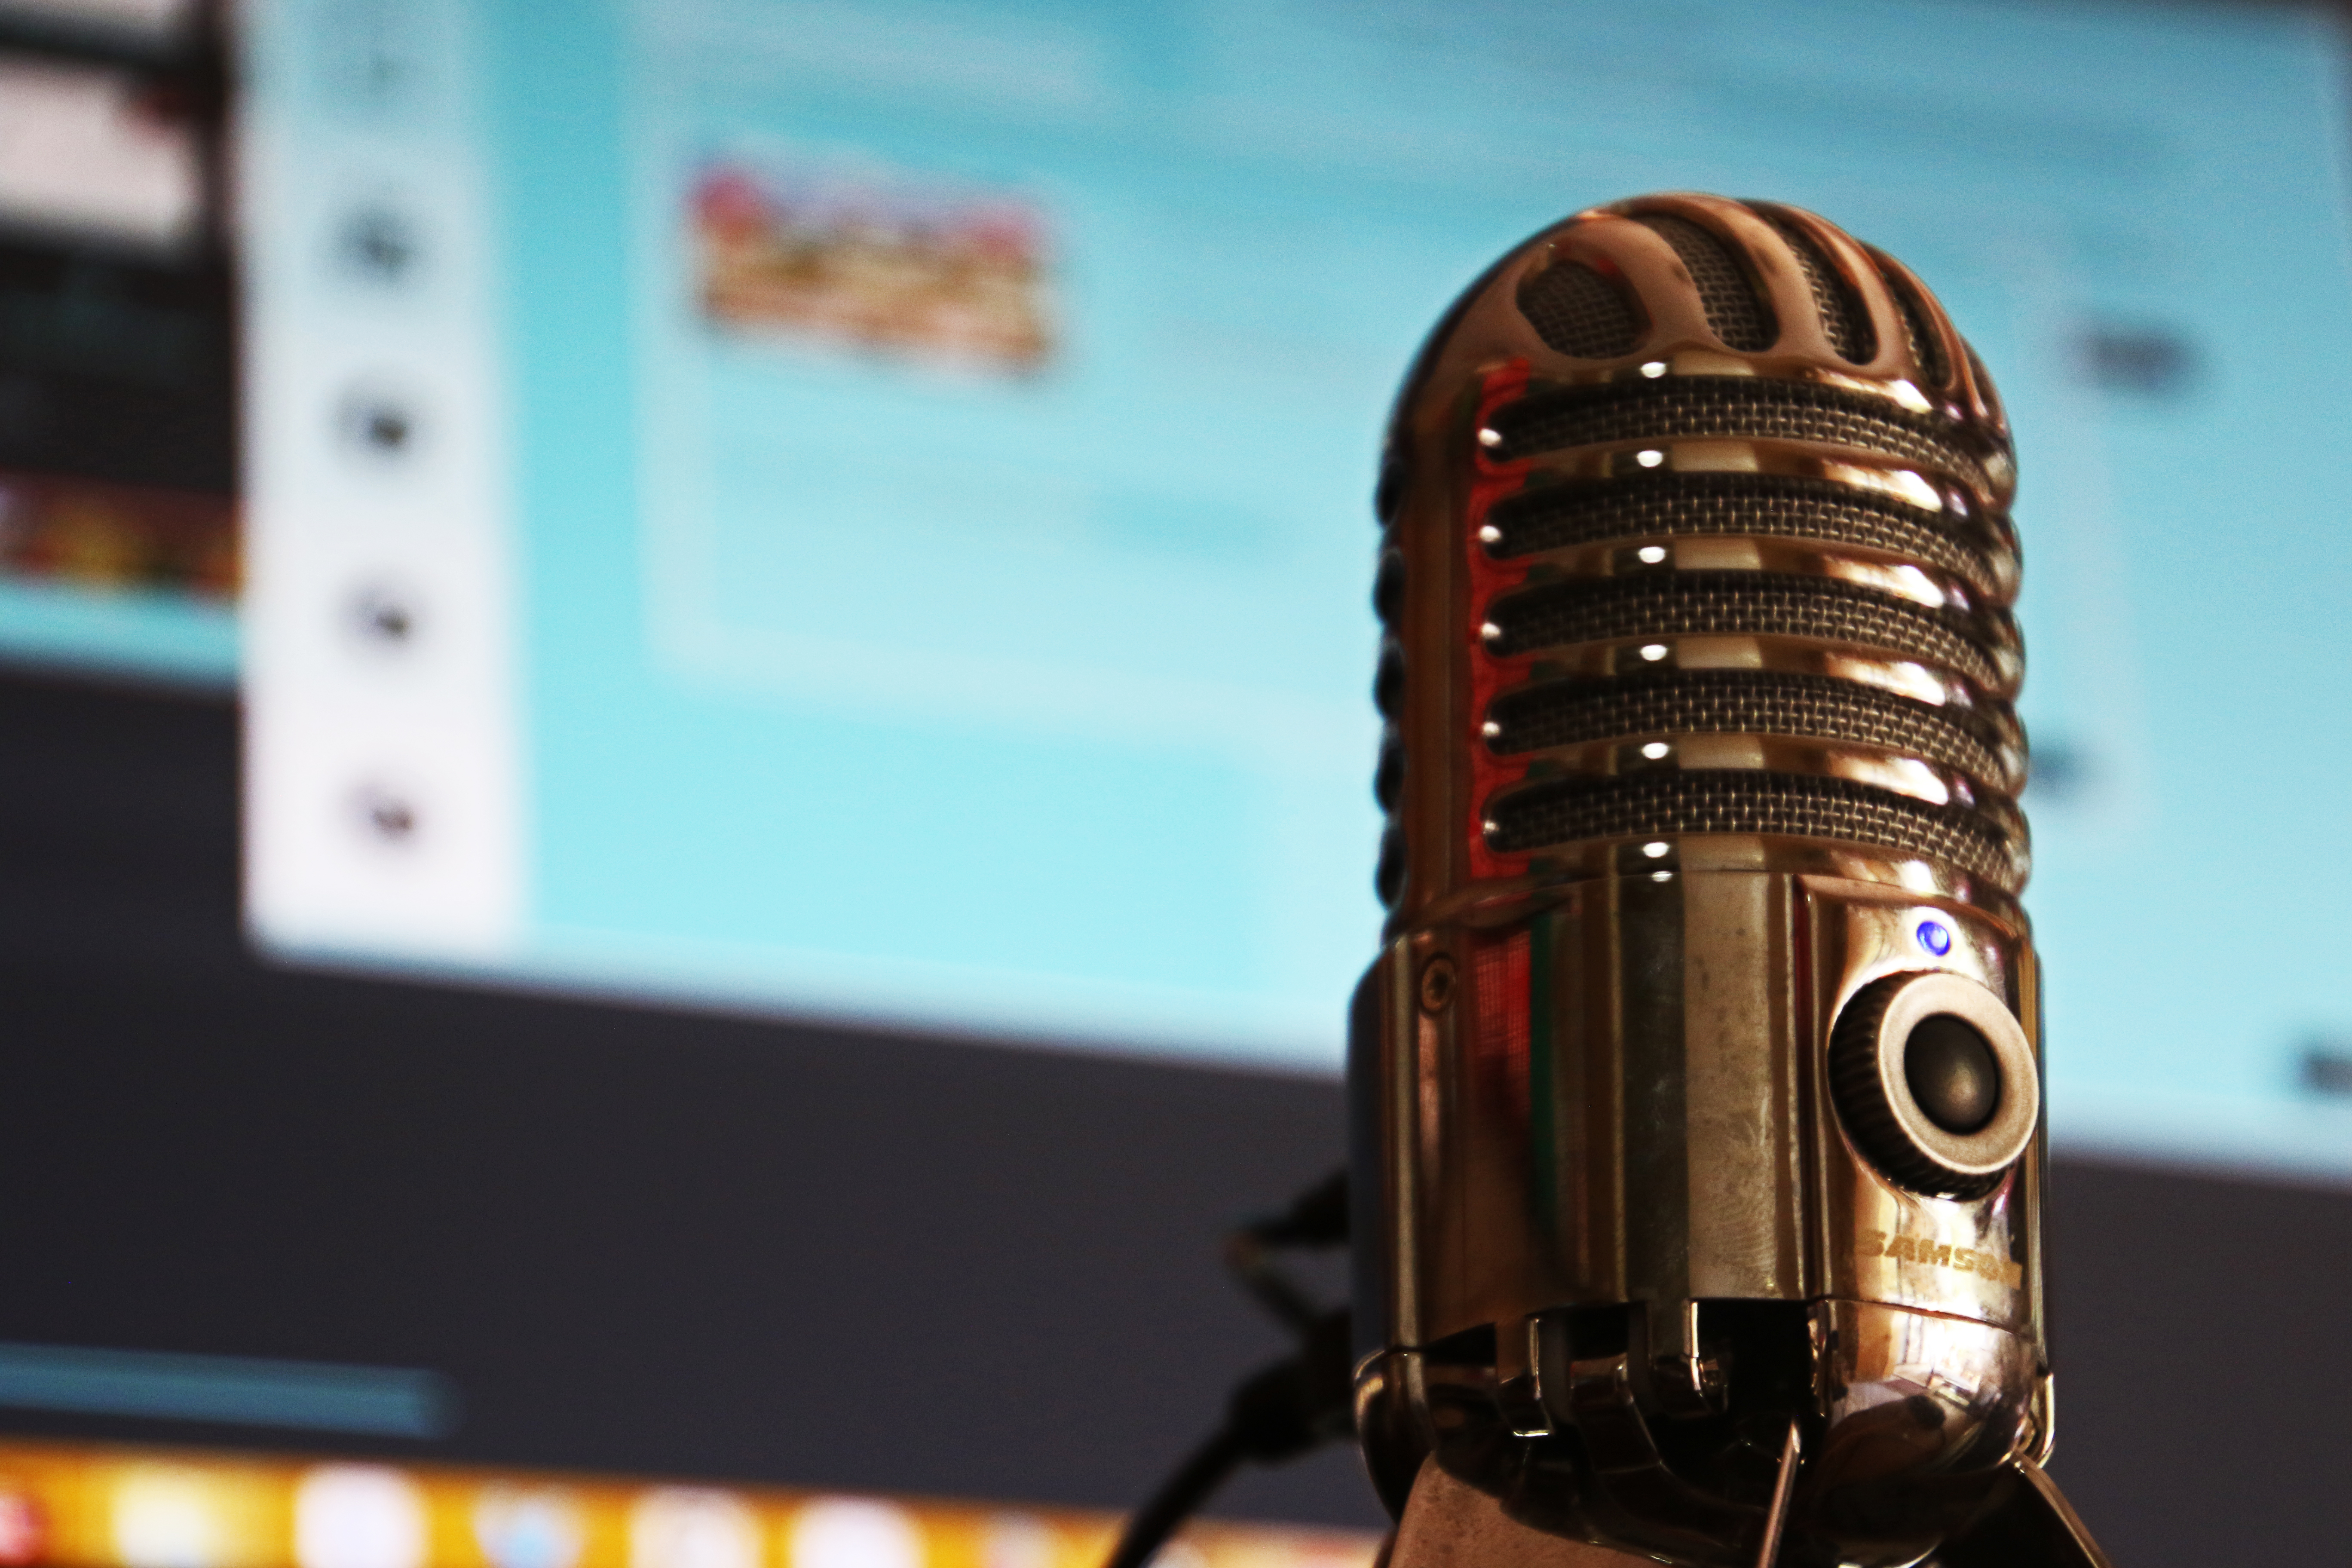 stock image of a microphone in front of a computer